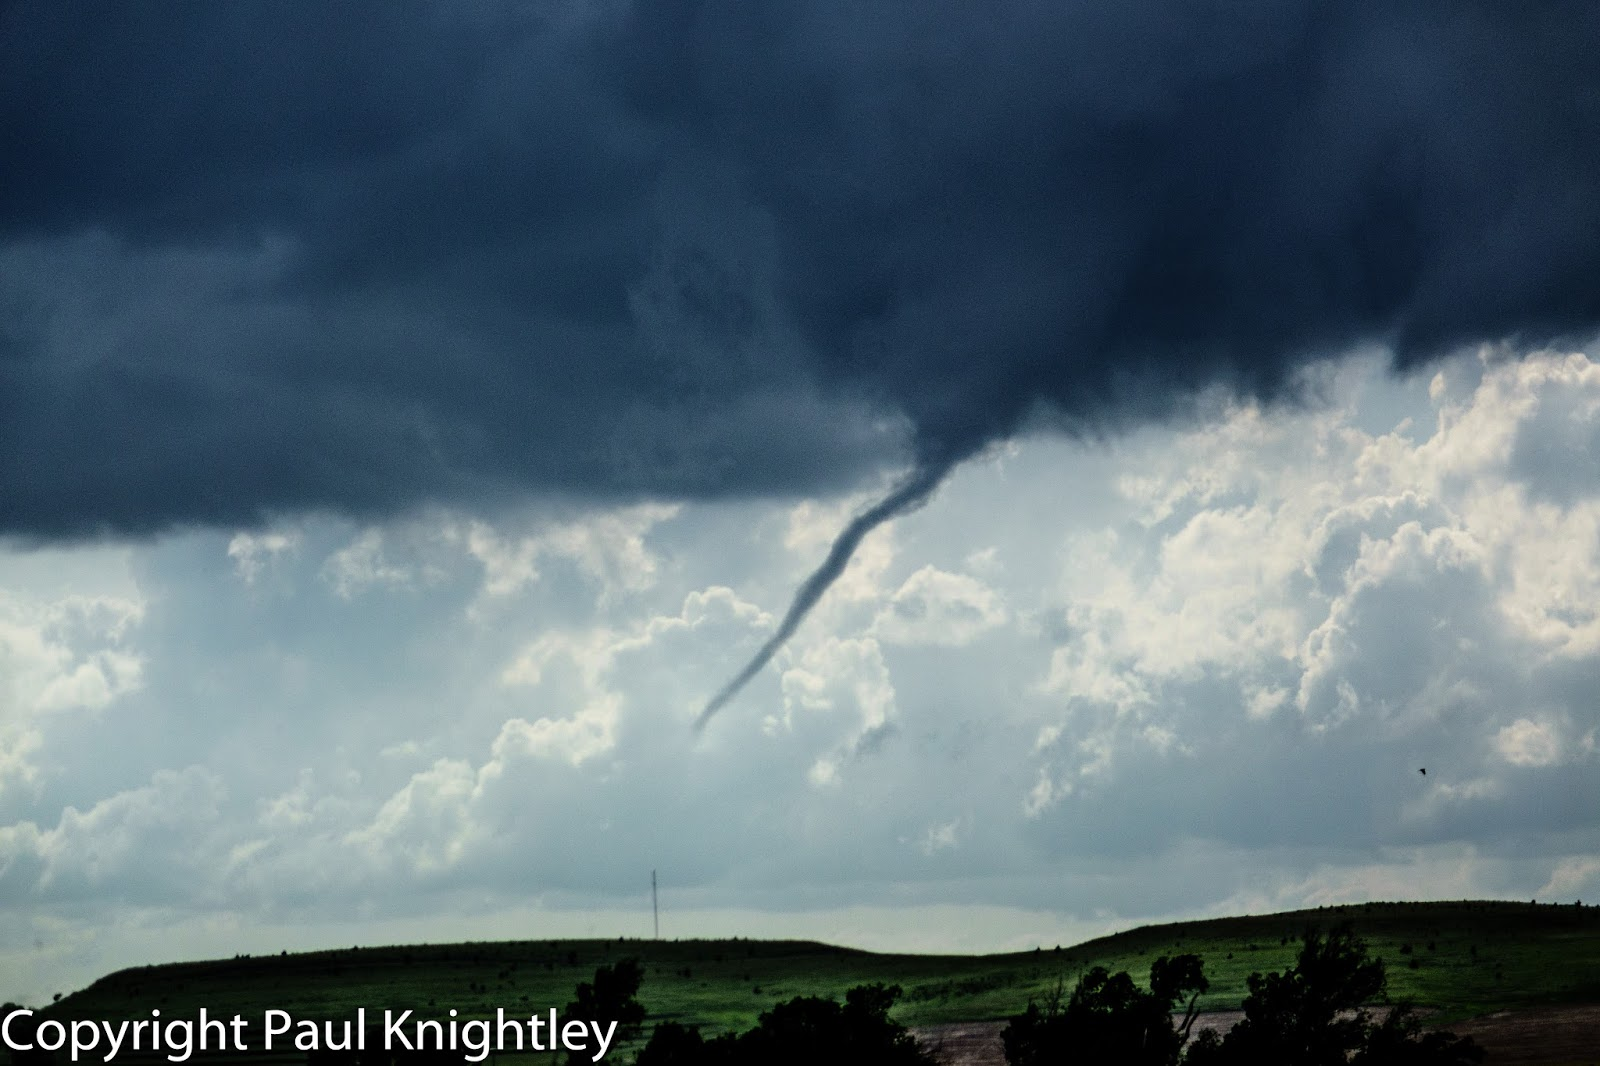 knightley s blog  wide shot showing funnel under line of towering cumulus